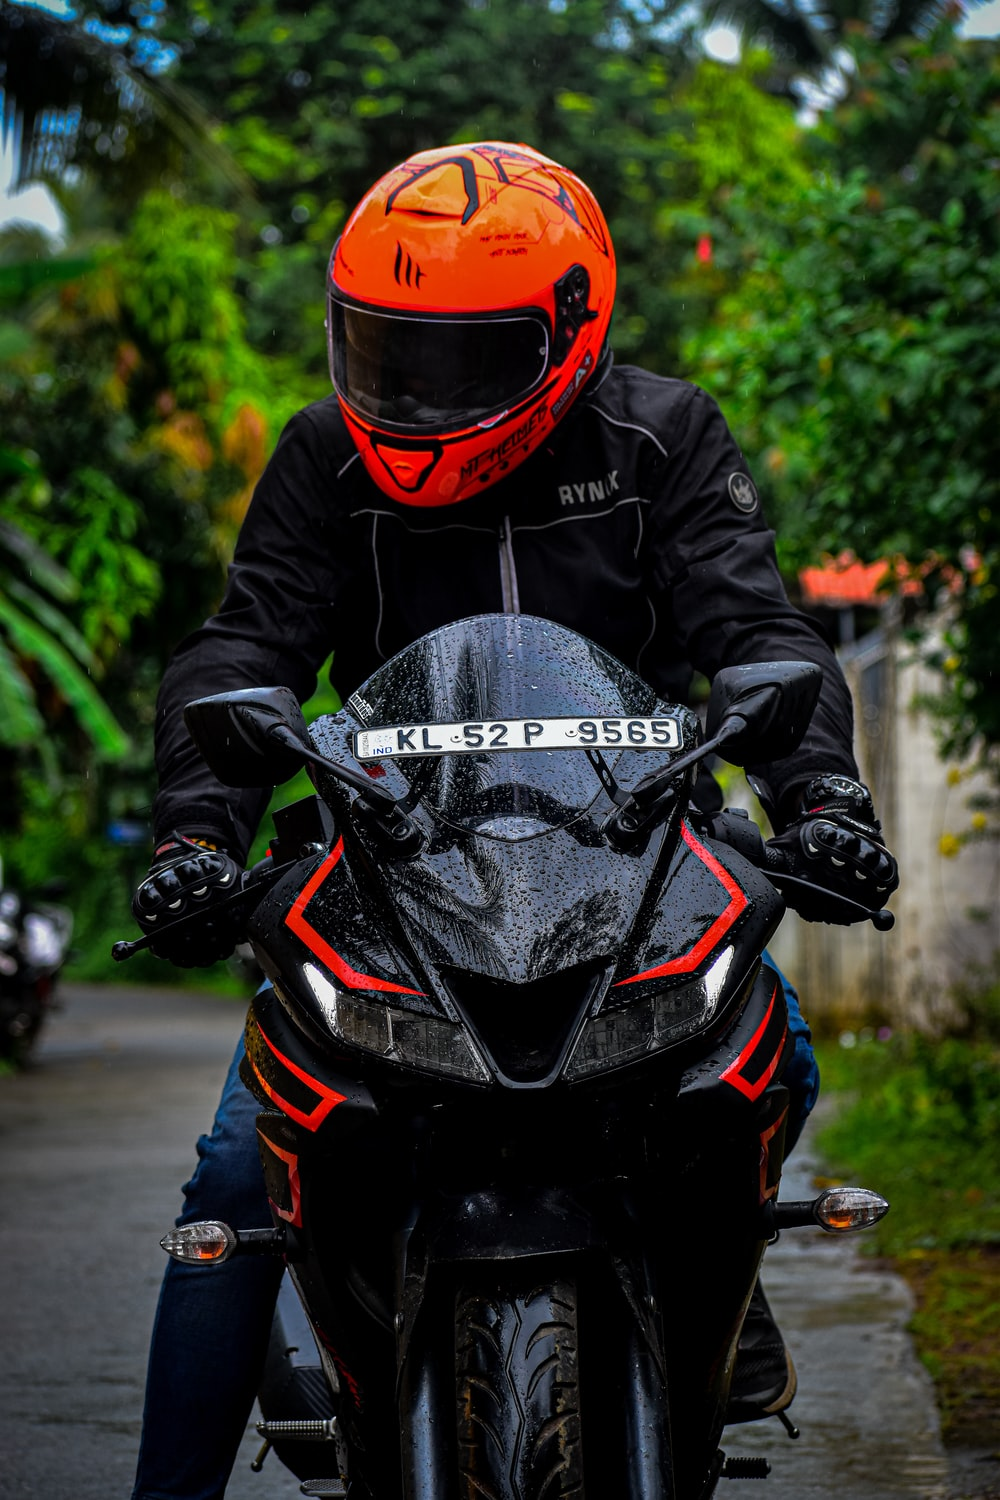 person in black and red motorcycle helmet and black jacket